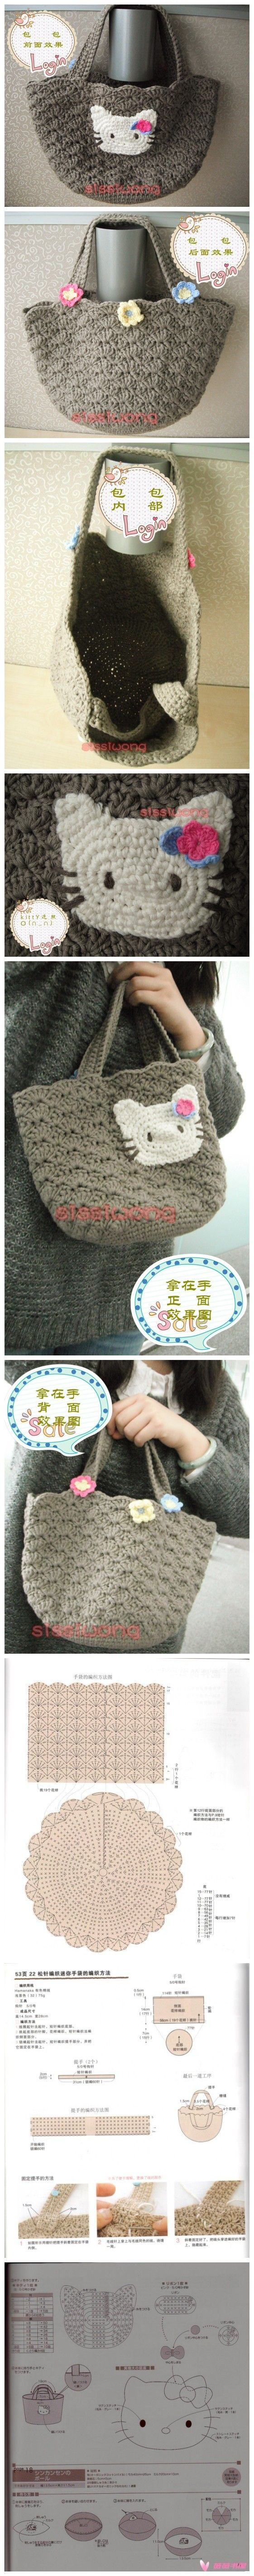 Free Chinese crochet pattern - Hello Kitty (other really cool stuff on this site, too...but all in Chinese)